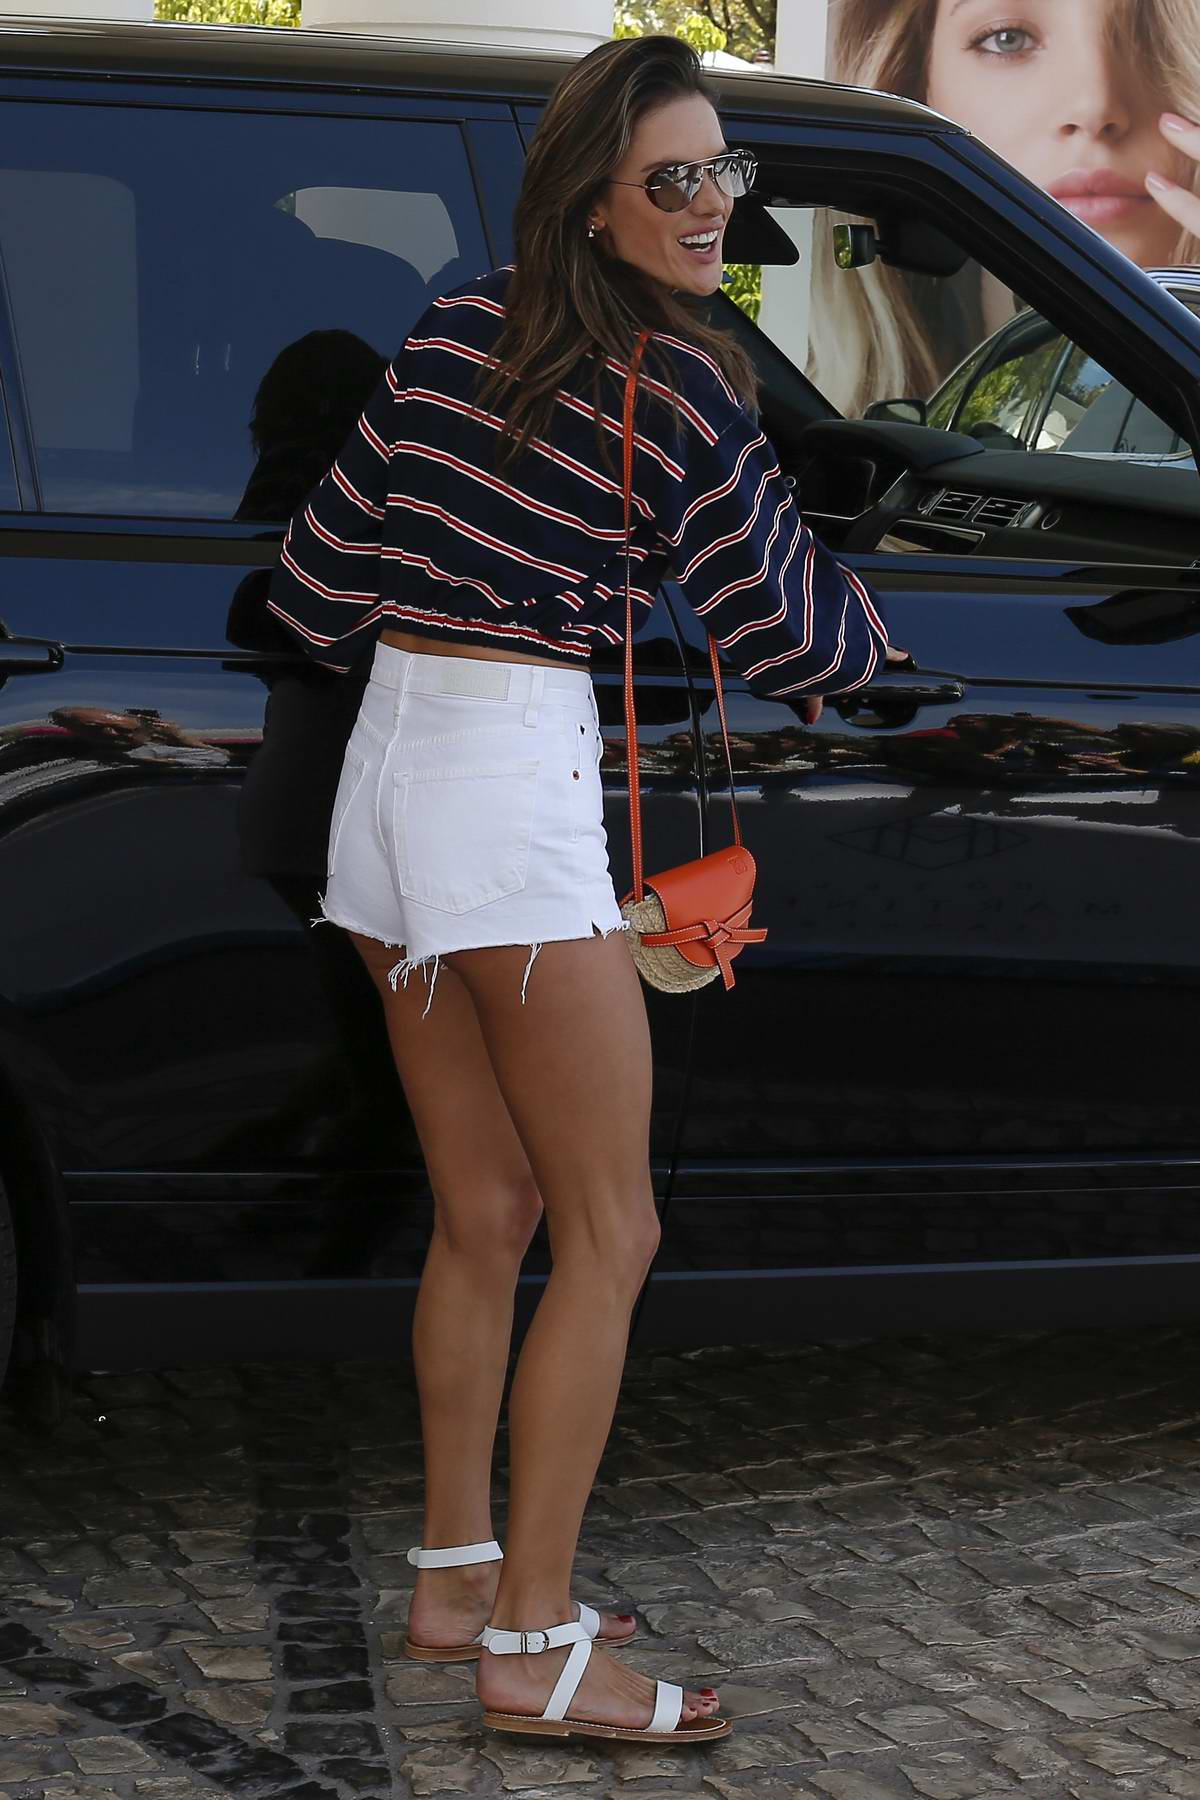 Alessandra Ambrosio rocks white denim shorts and striped top as she leaves her hotel in Cannes, France